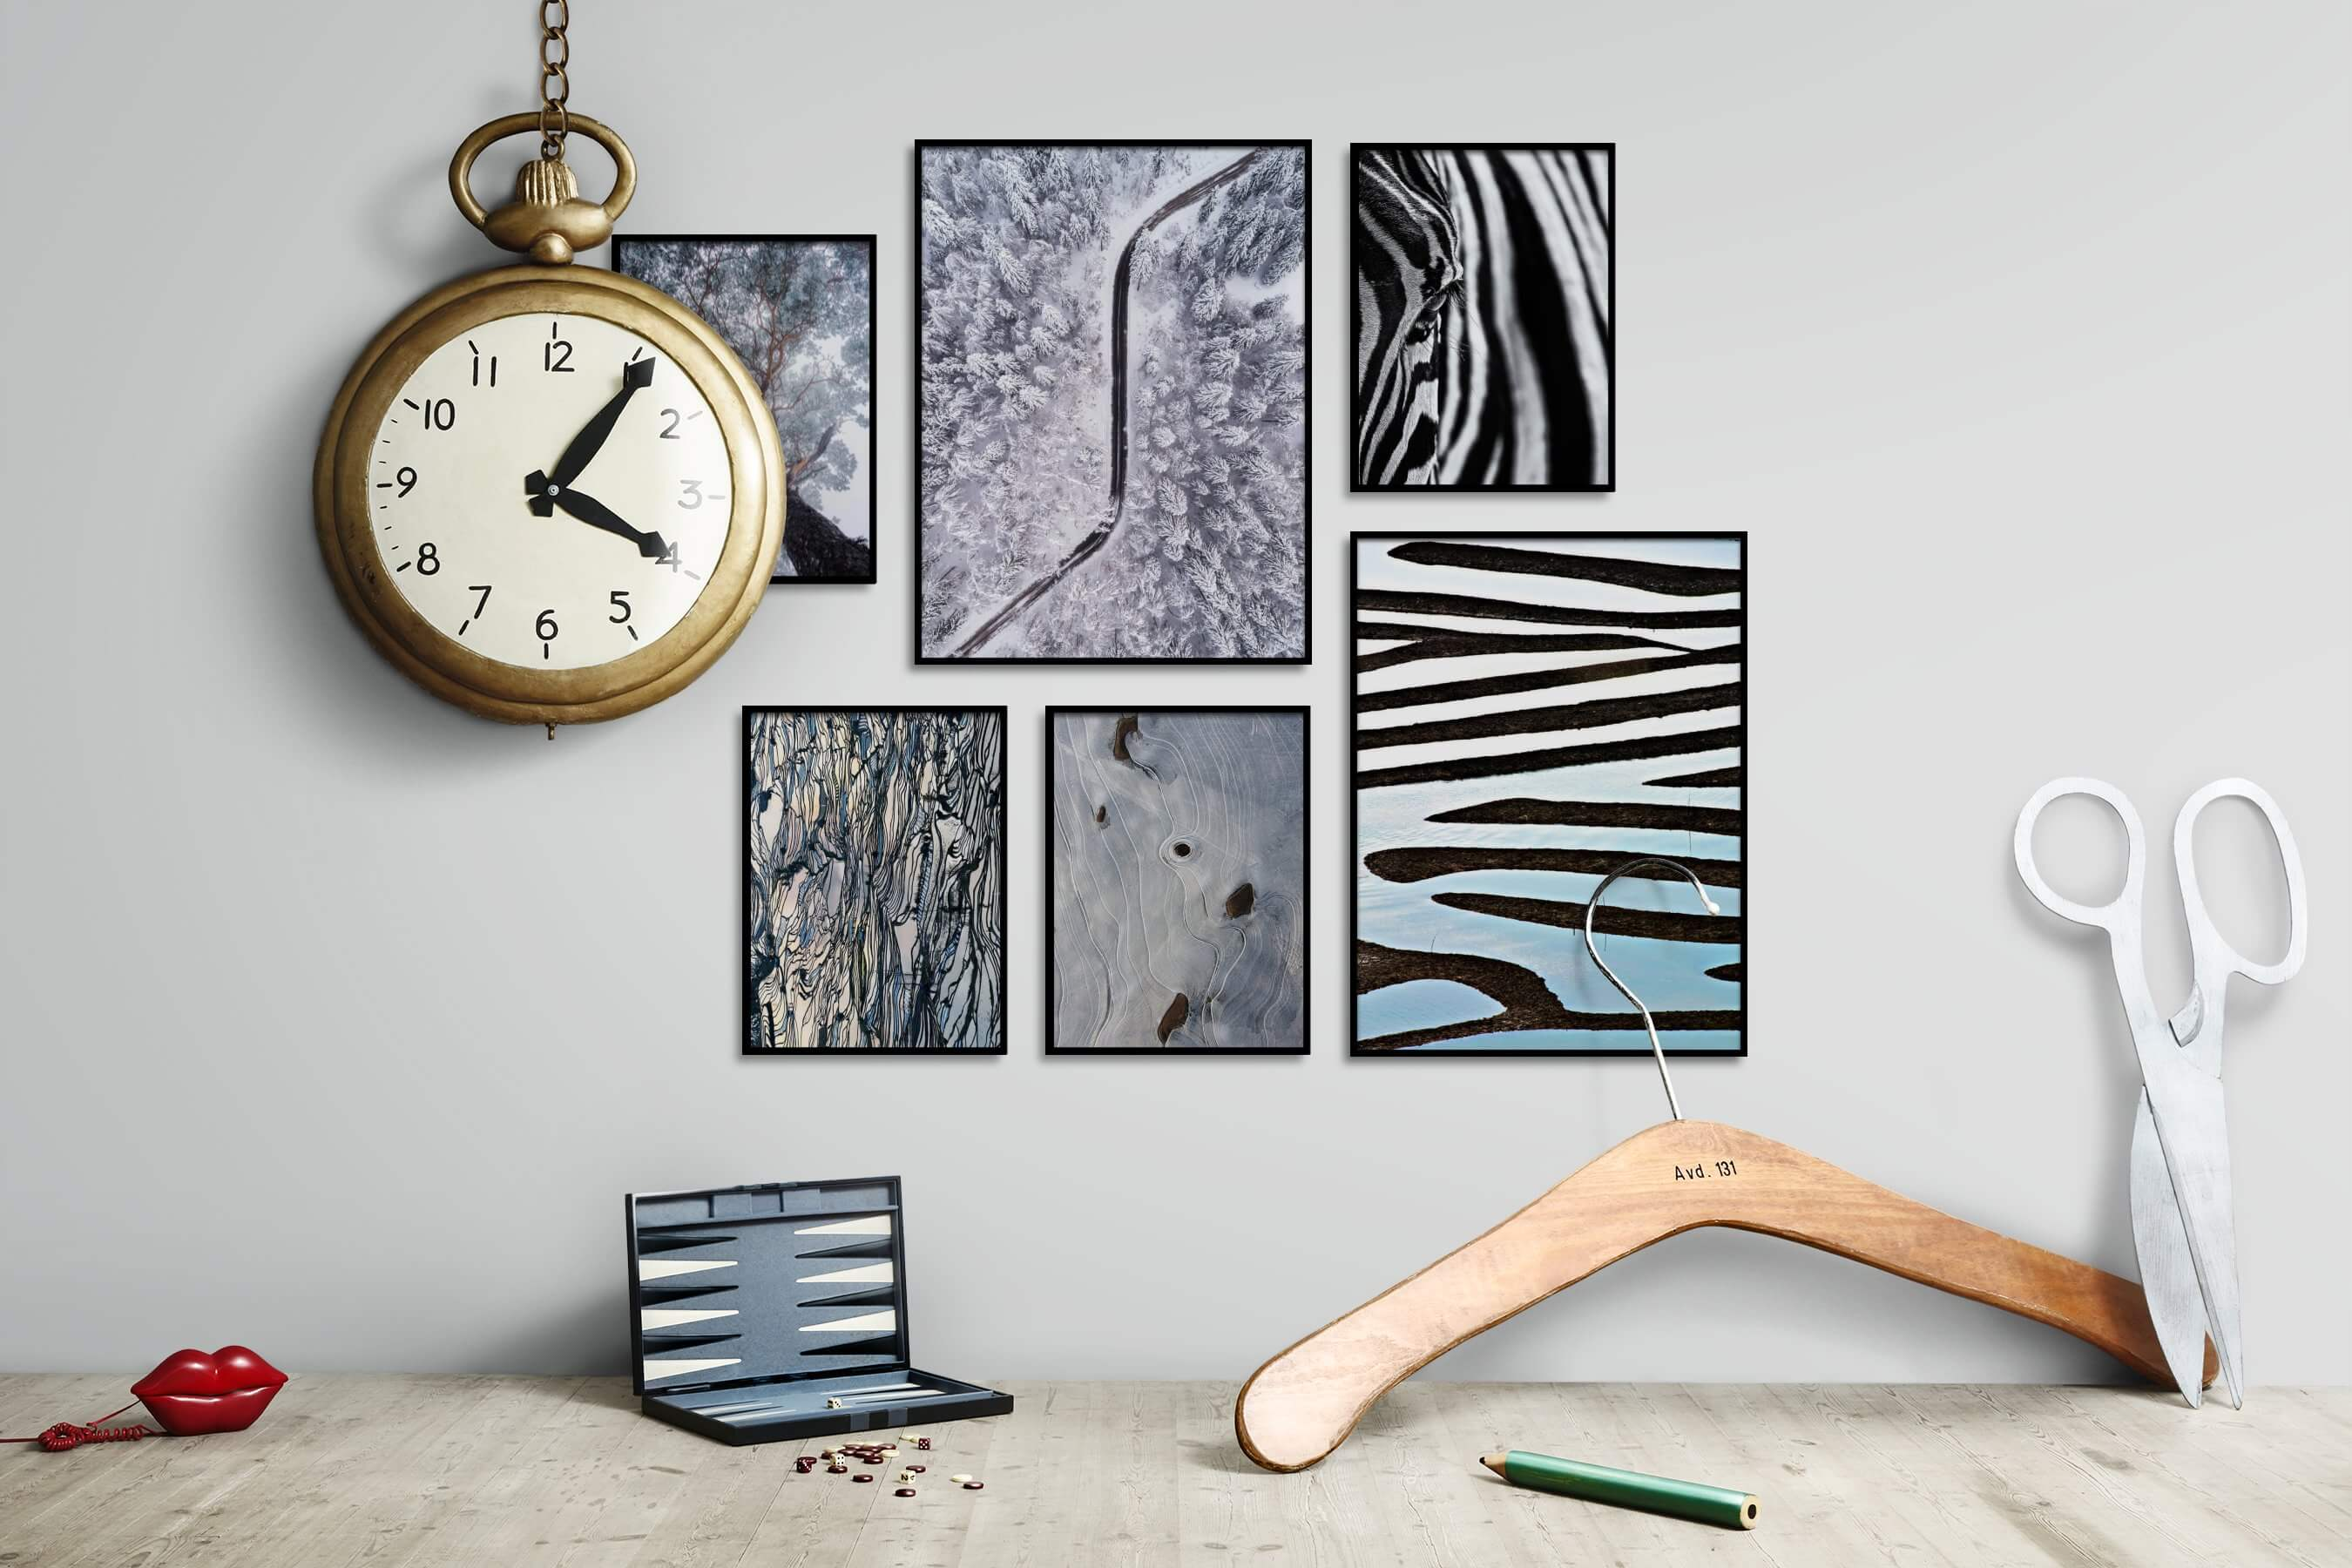 Gallery wall idea with six framed pictures arranged on a wall depicting For the Moderate, Nature, Mindfulness, For the Maximalist, Black & White, and Animals